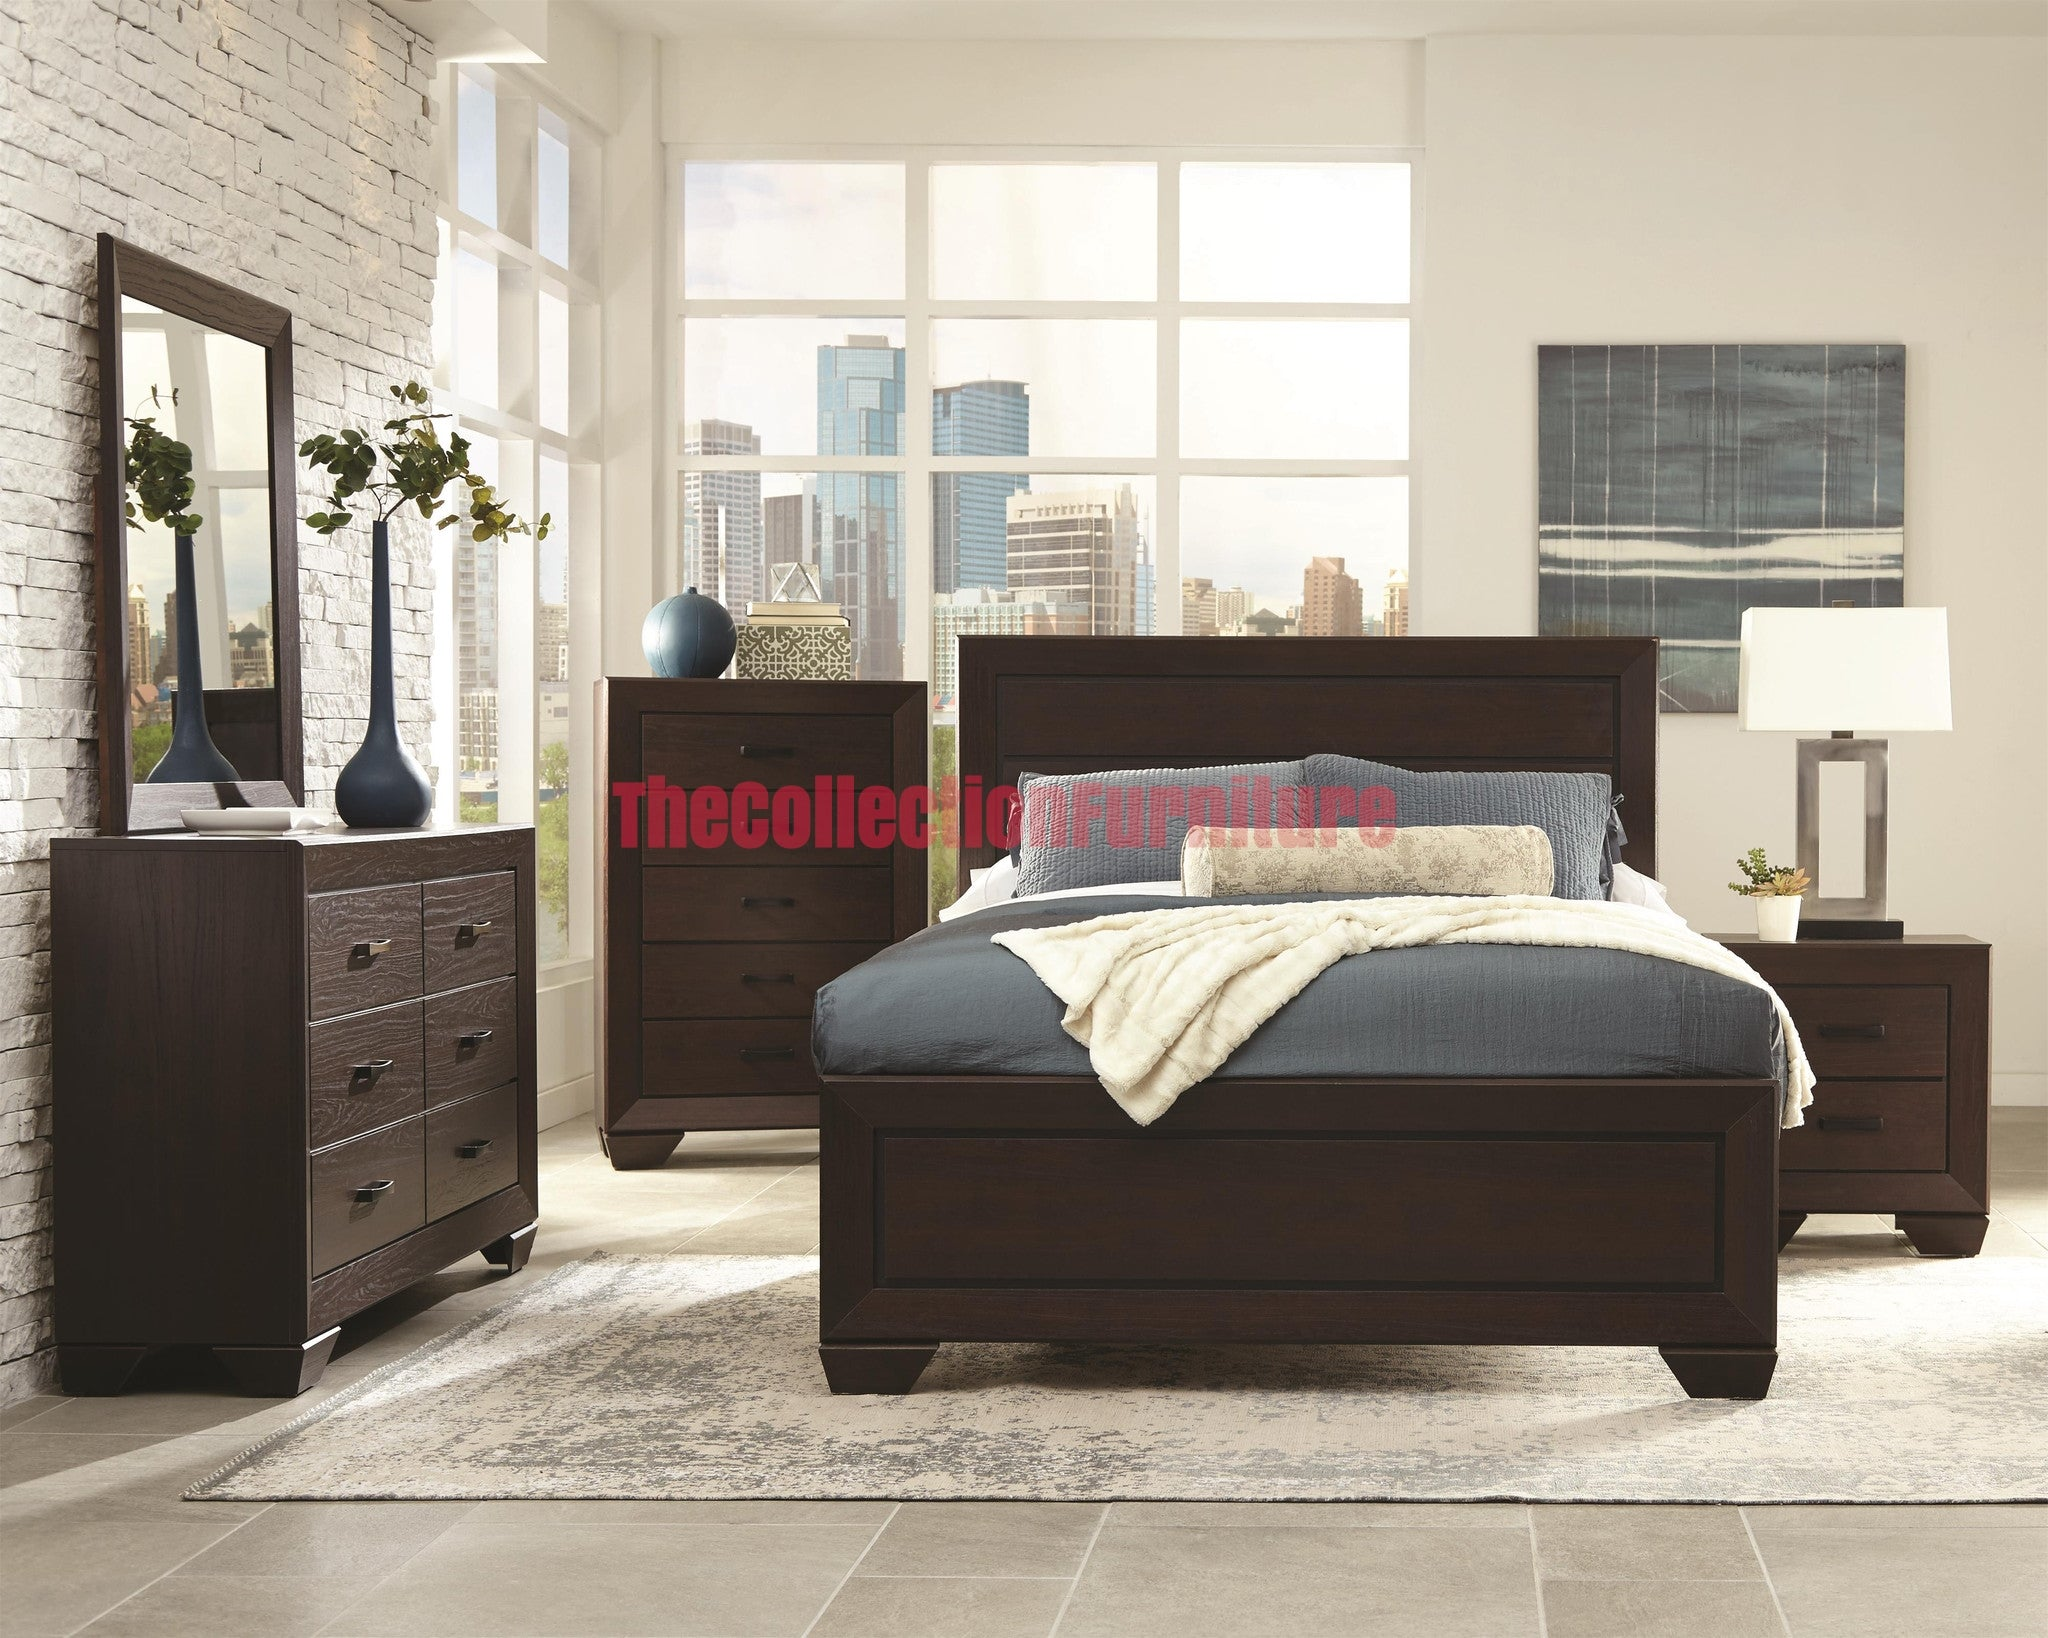 Lasheri 4-Piece Bedroom Set